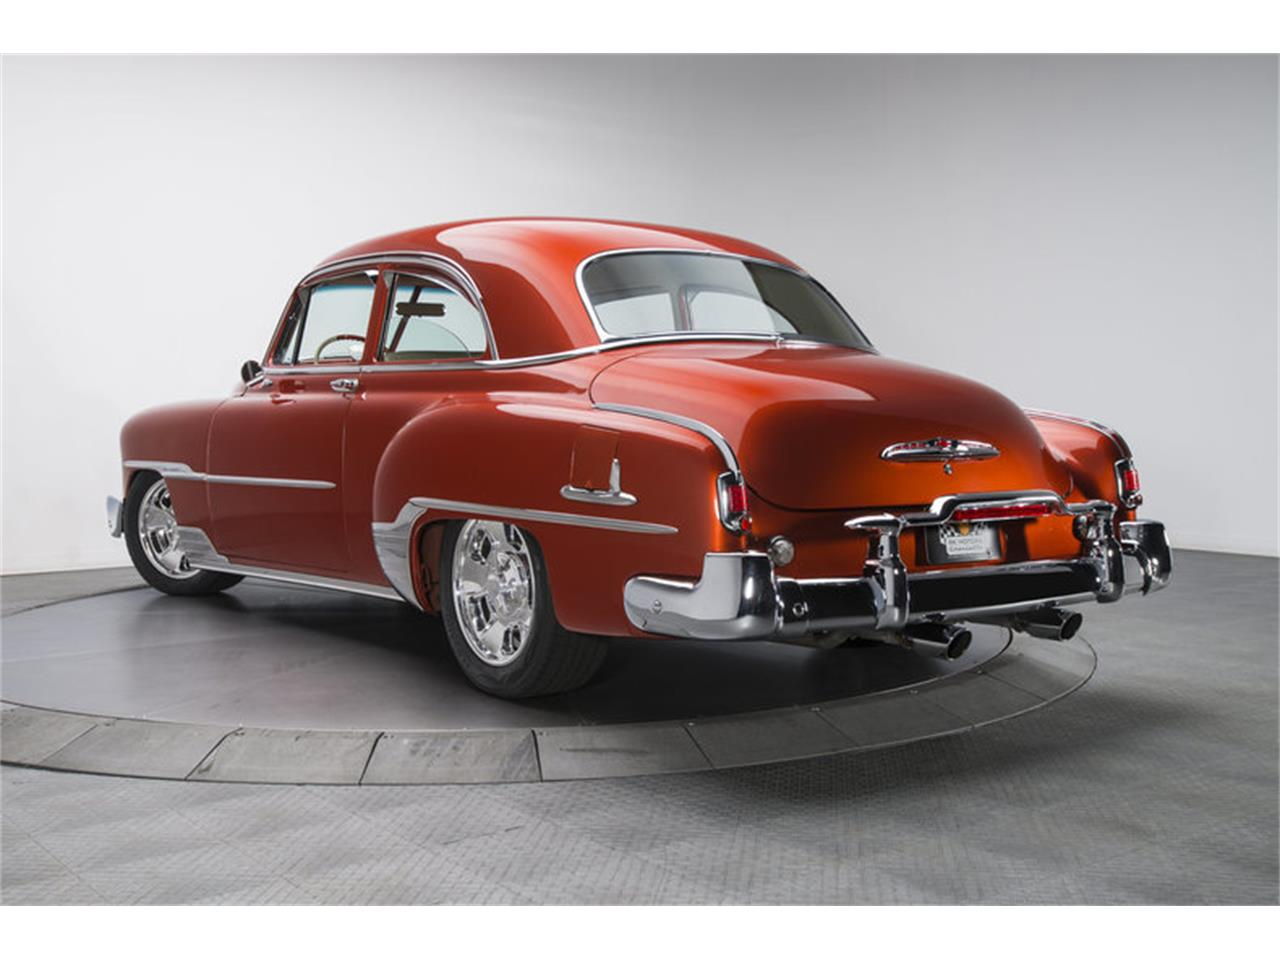 Large Picture of 1951 Chevrolet Styleline located in North Carolina - $64,900.00 - MER9